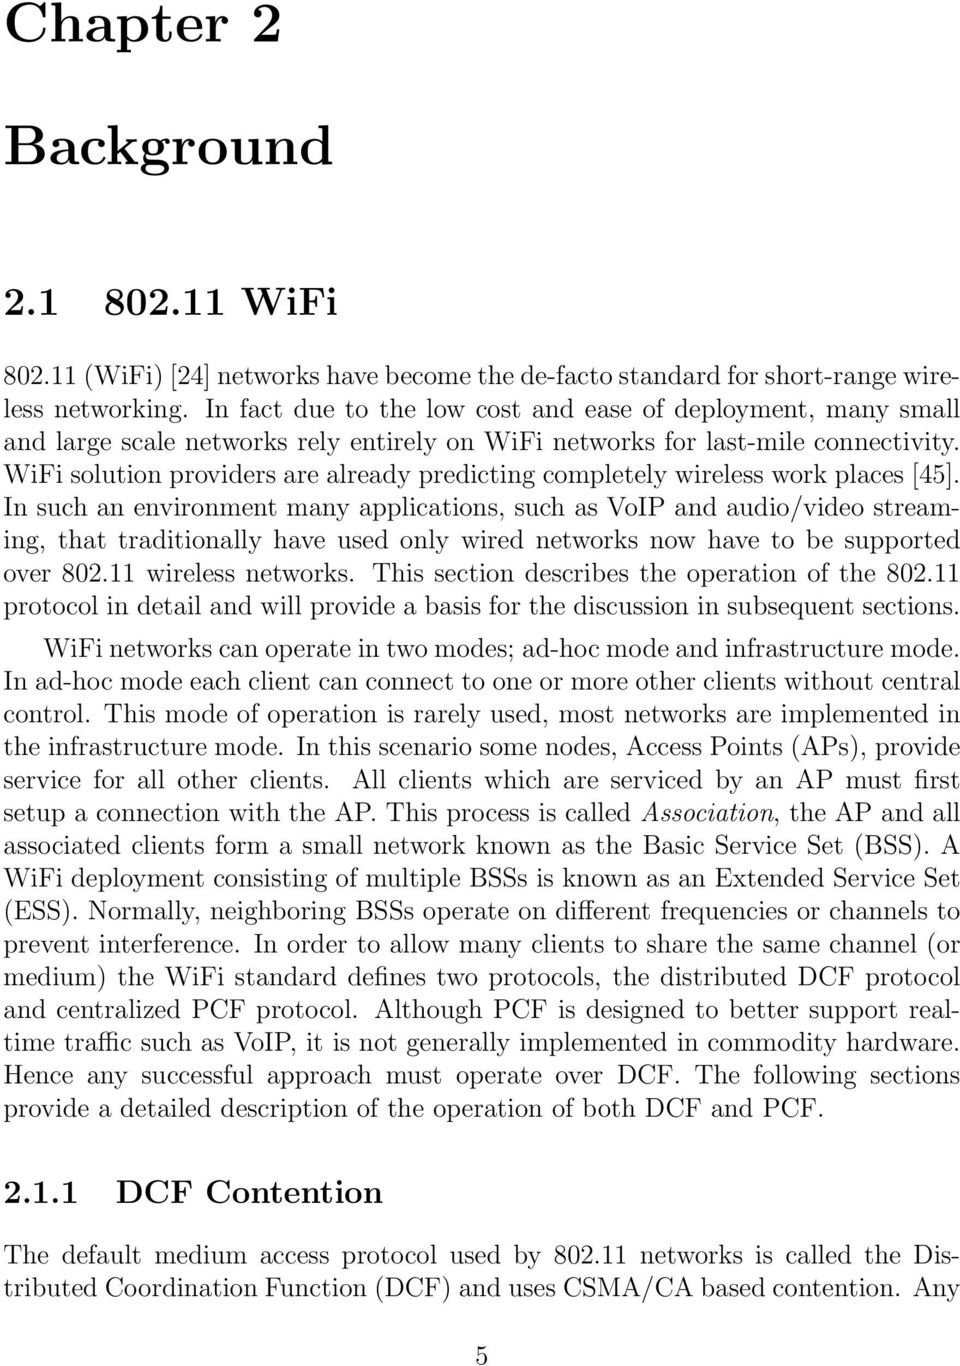 WiFi solution providers are already predicting completely wireless work places [45].